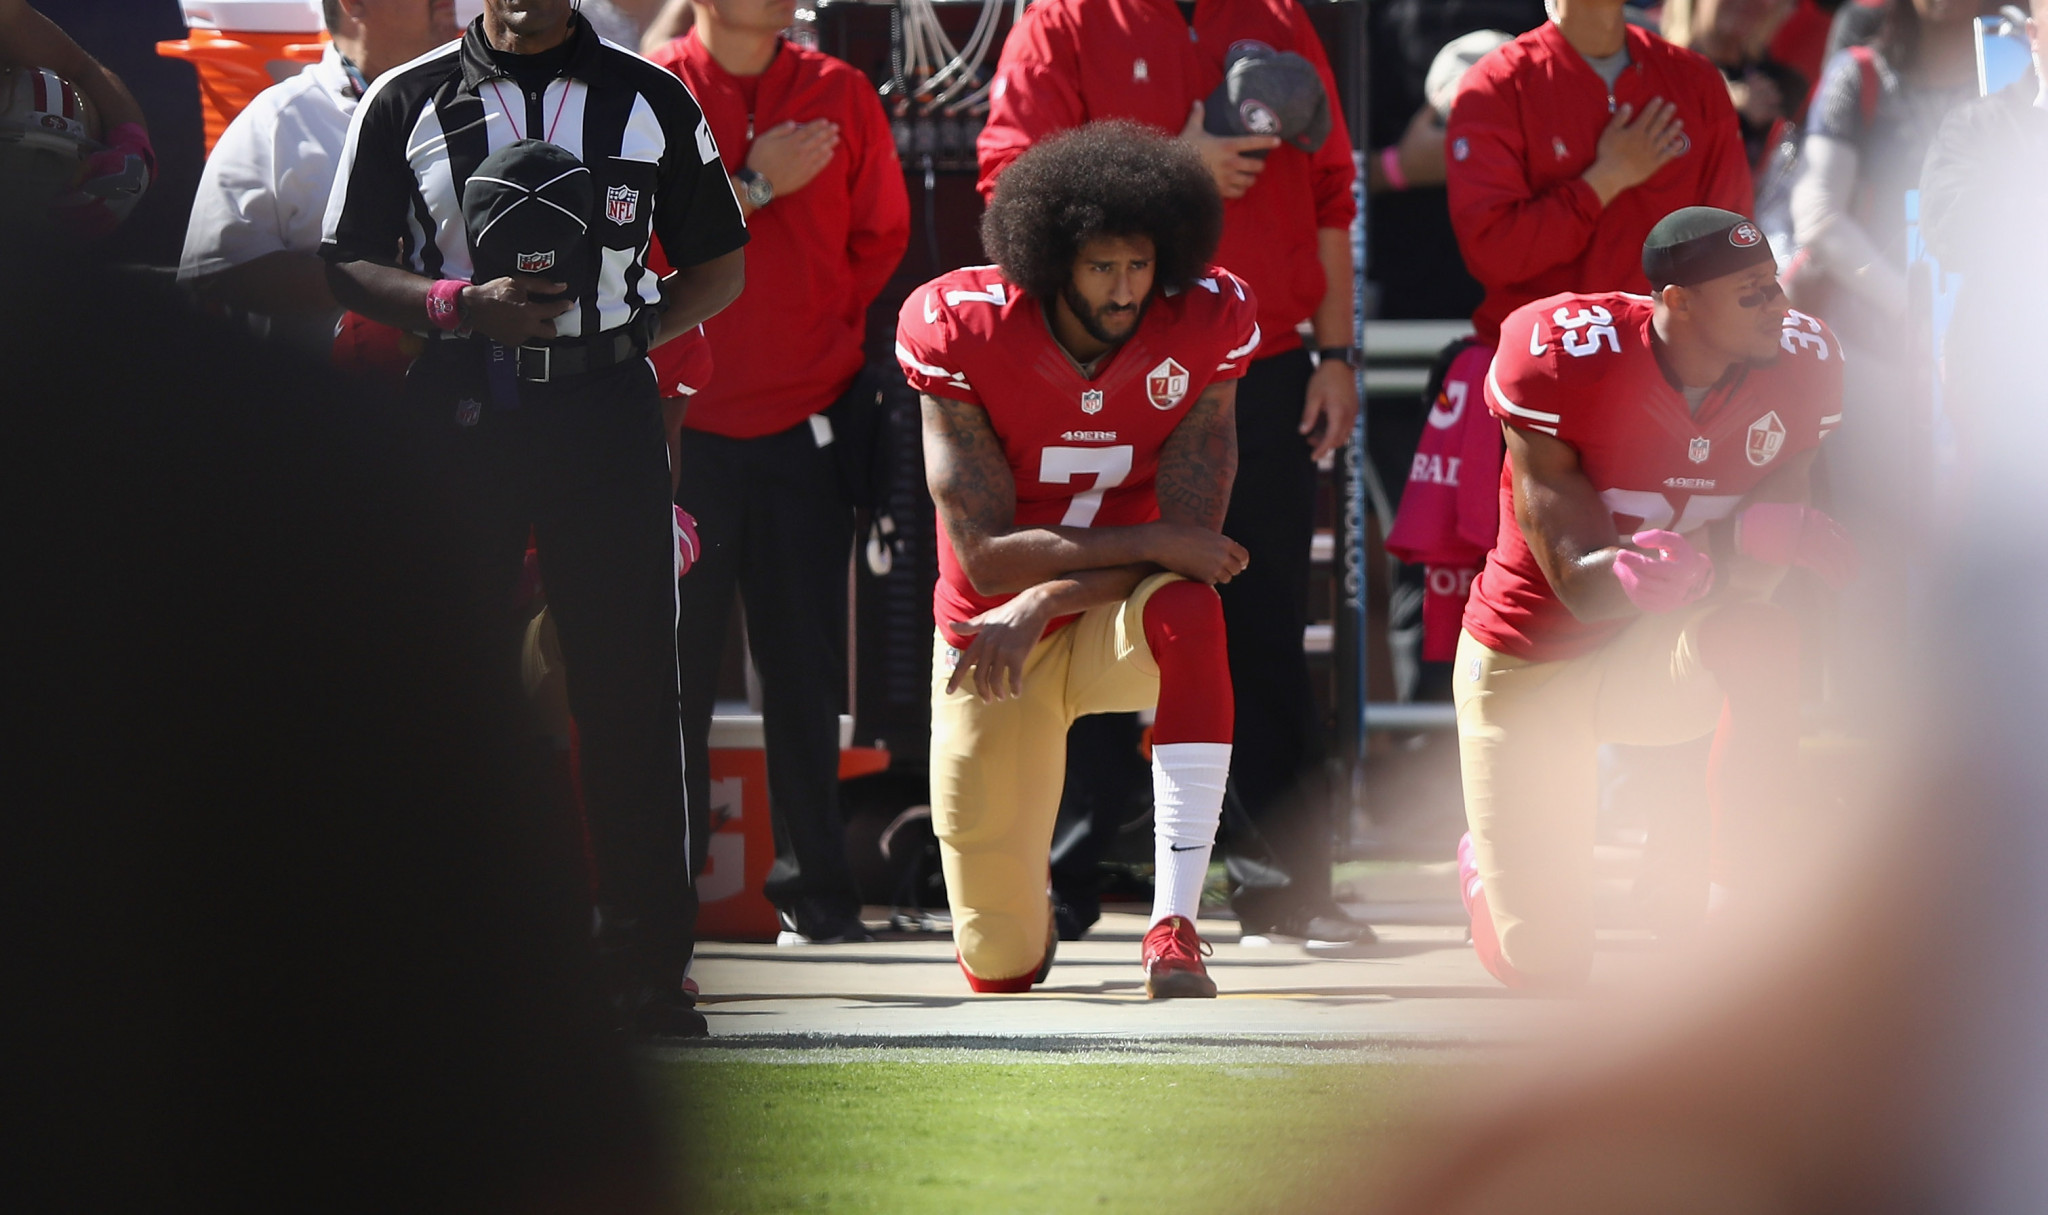 Colin Kaepernick is among the athletes to have taken stances on social issues ©Getty Images